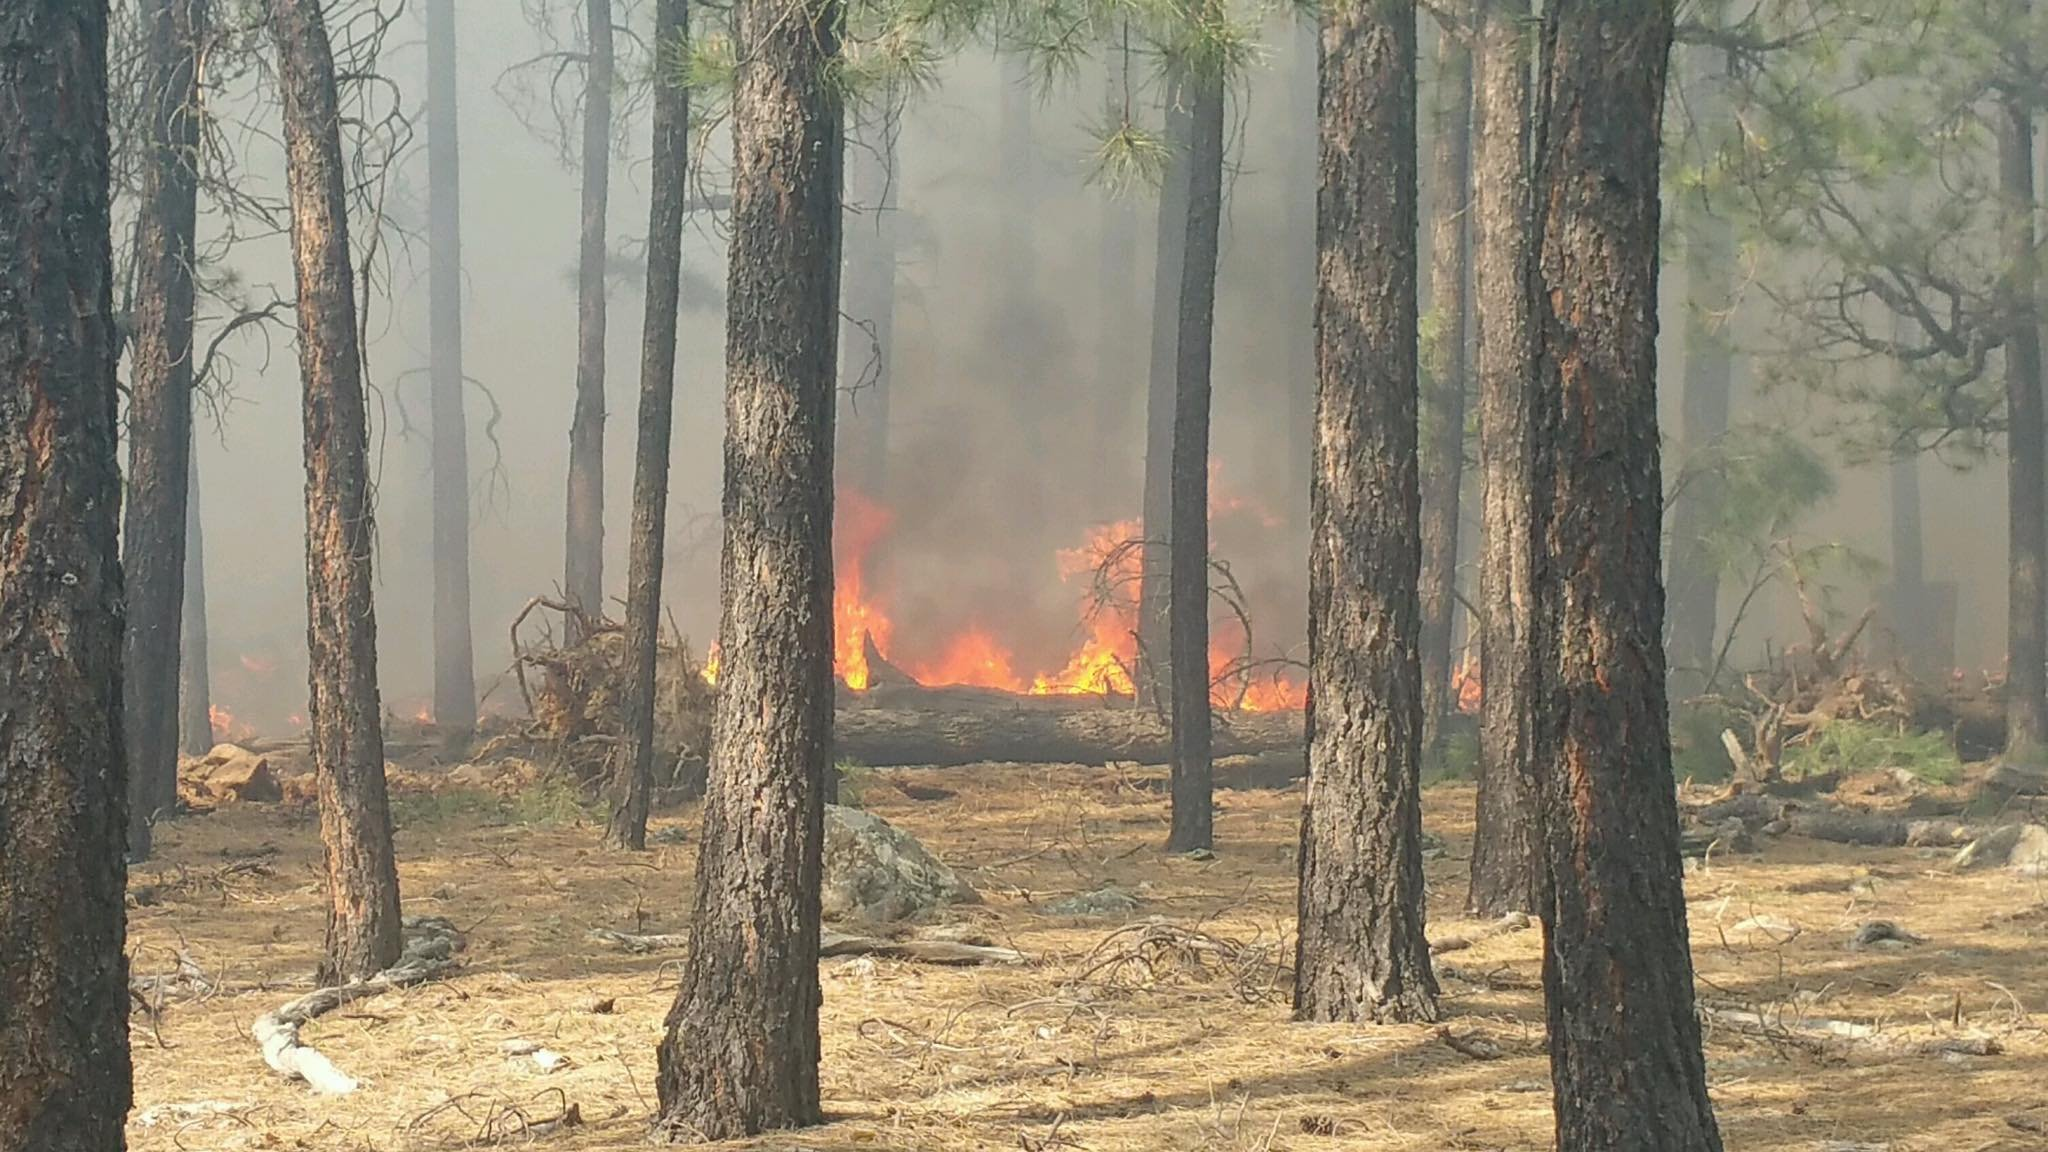 The fire has burned 3 acres. (Source: Forest Lakes Fire Department)